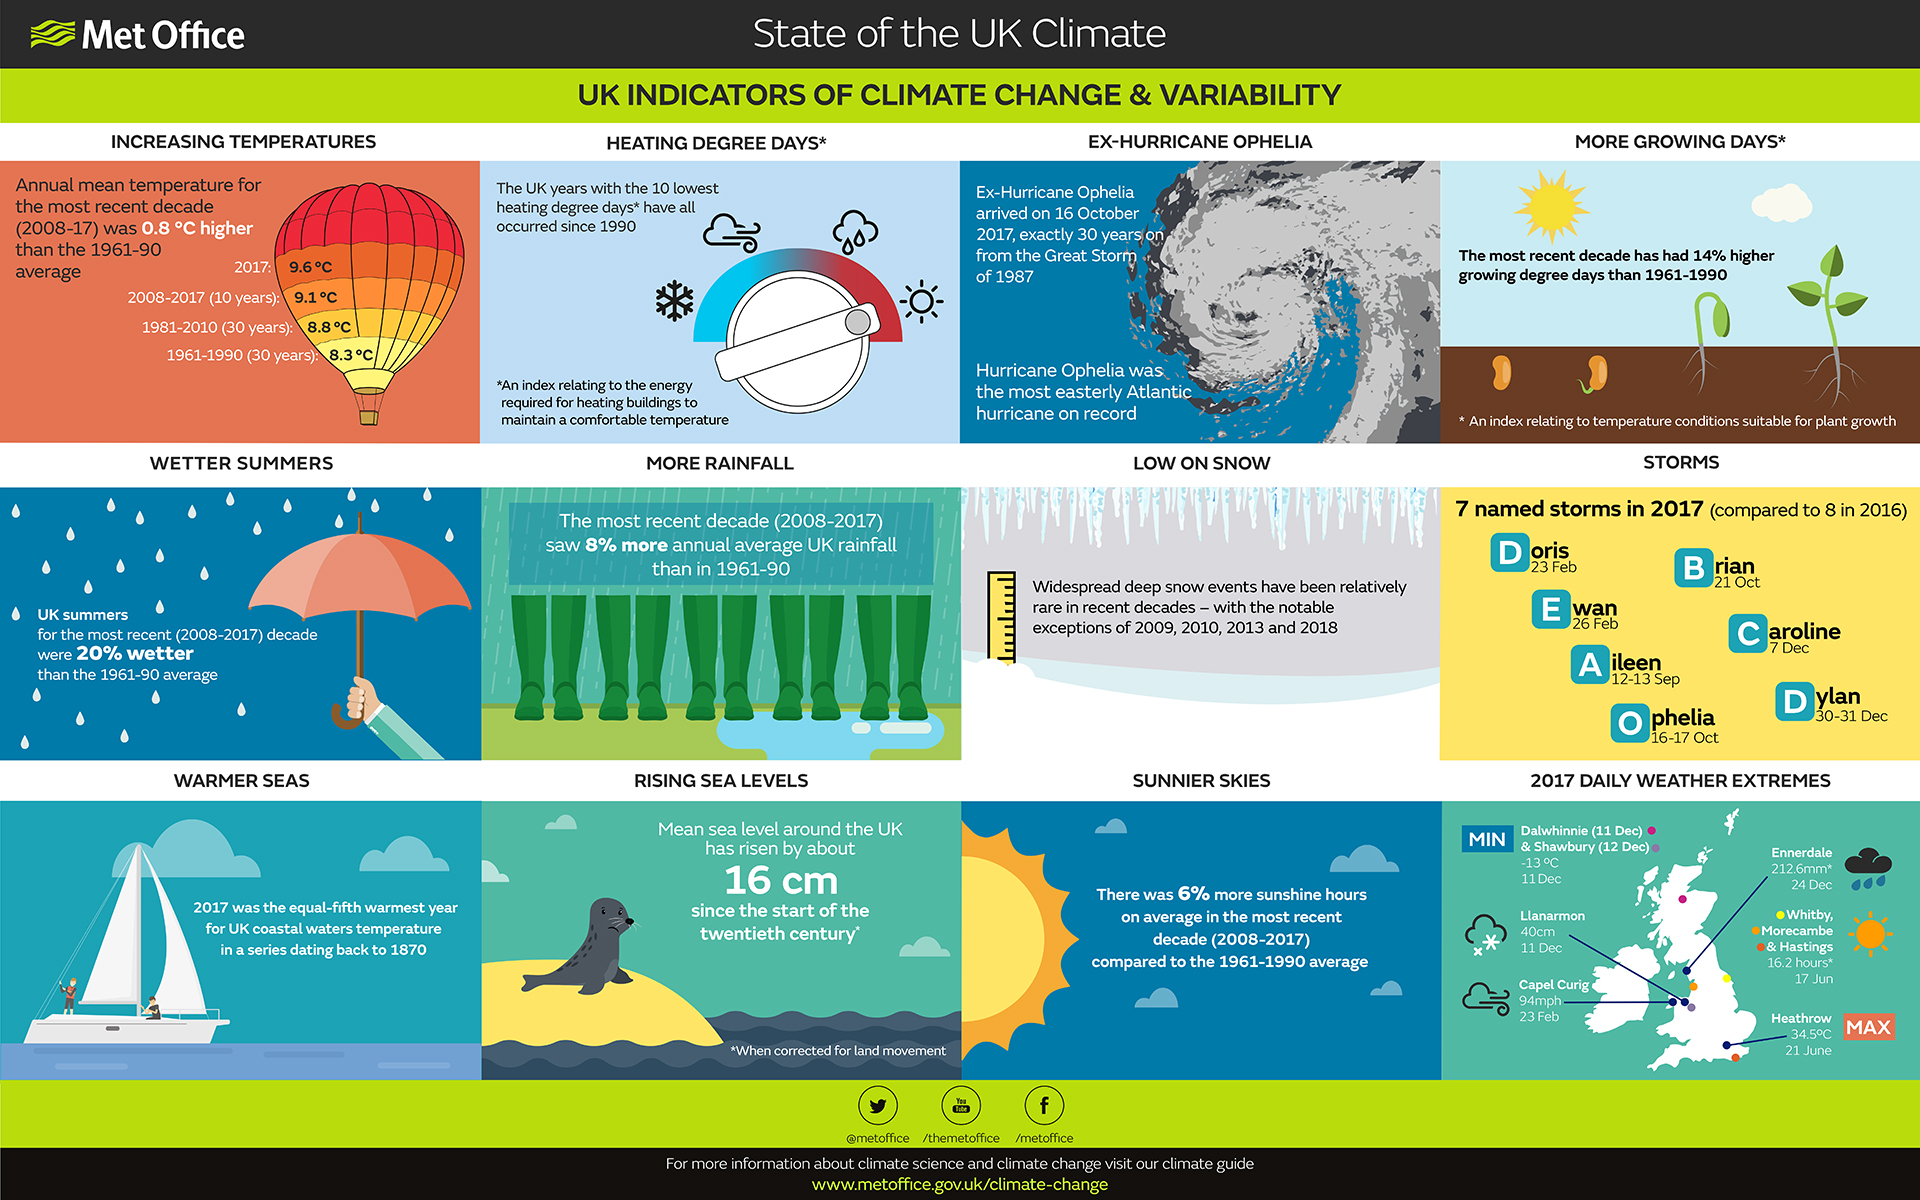 State of the uk climate met office - Www met office weather forecast ...